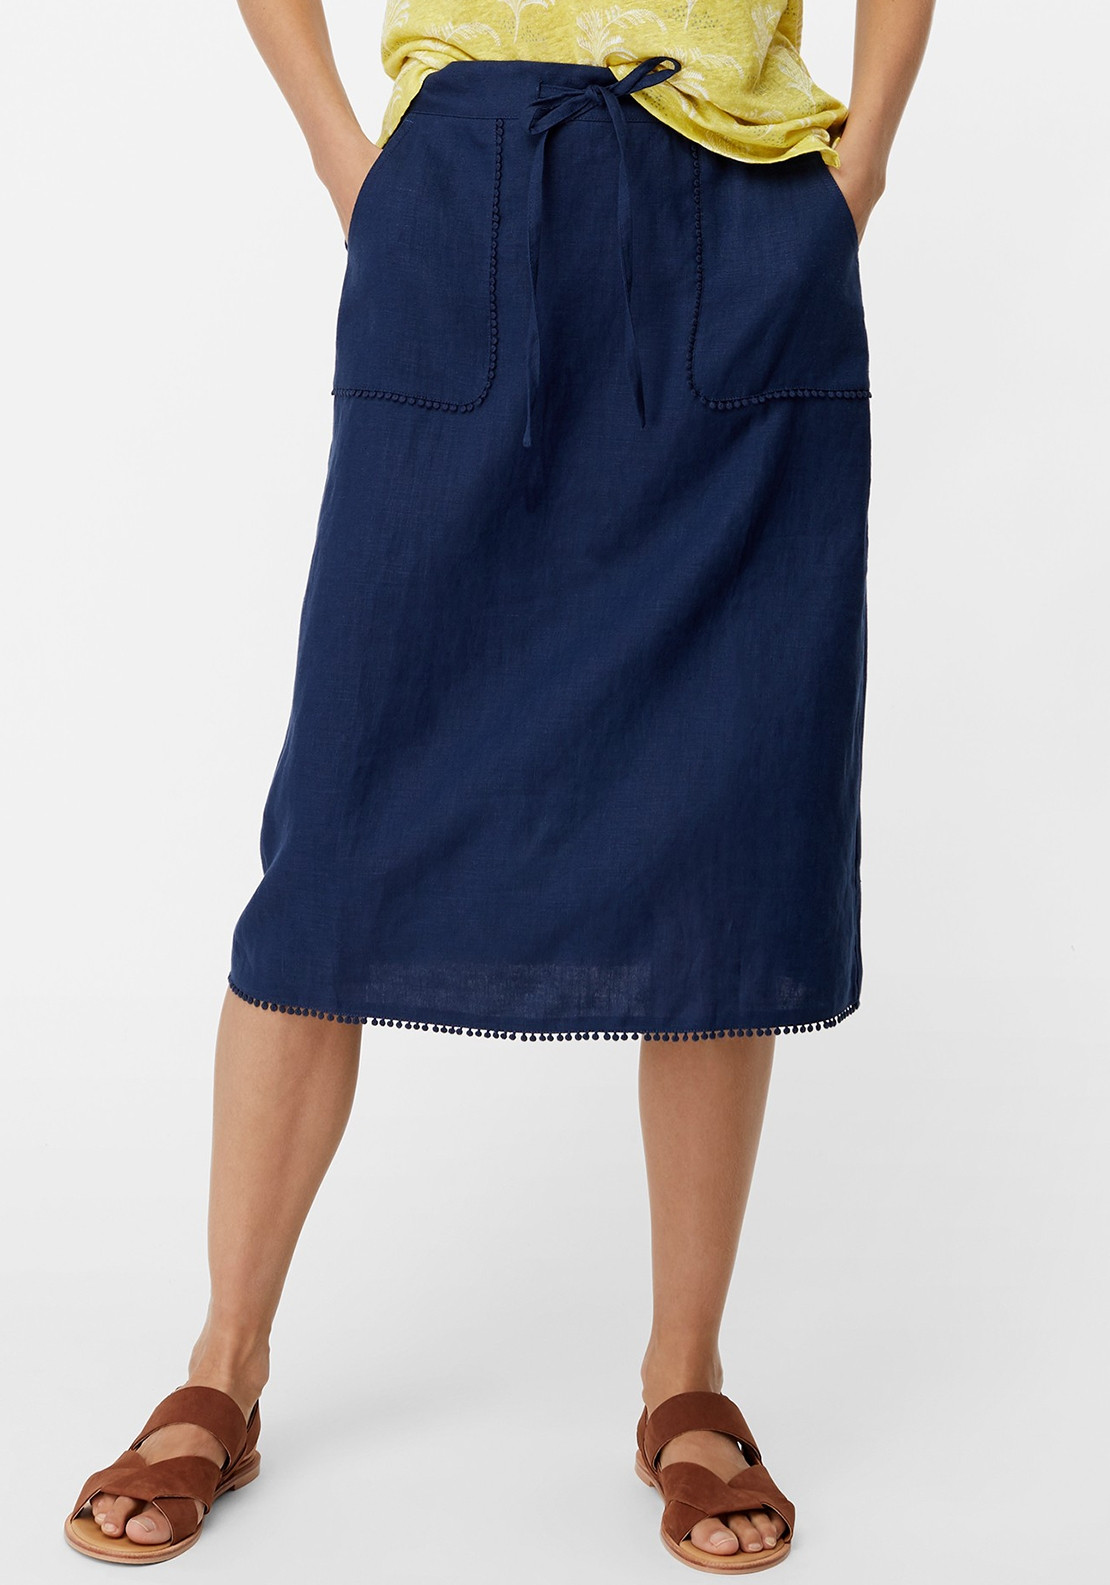 8547ab5fb545 White Stuff Portia Linen Skirt, Enso Navy. Be the first to review this  product